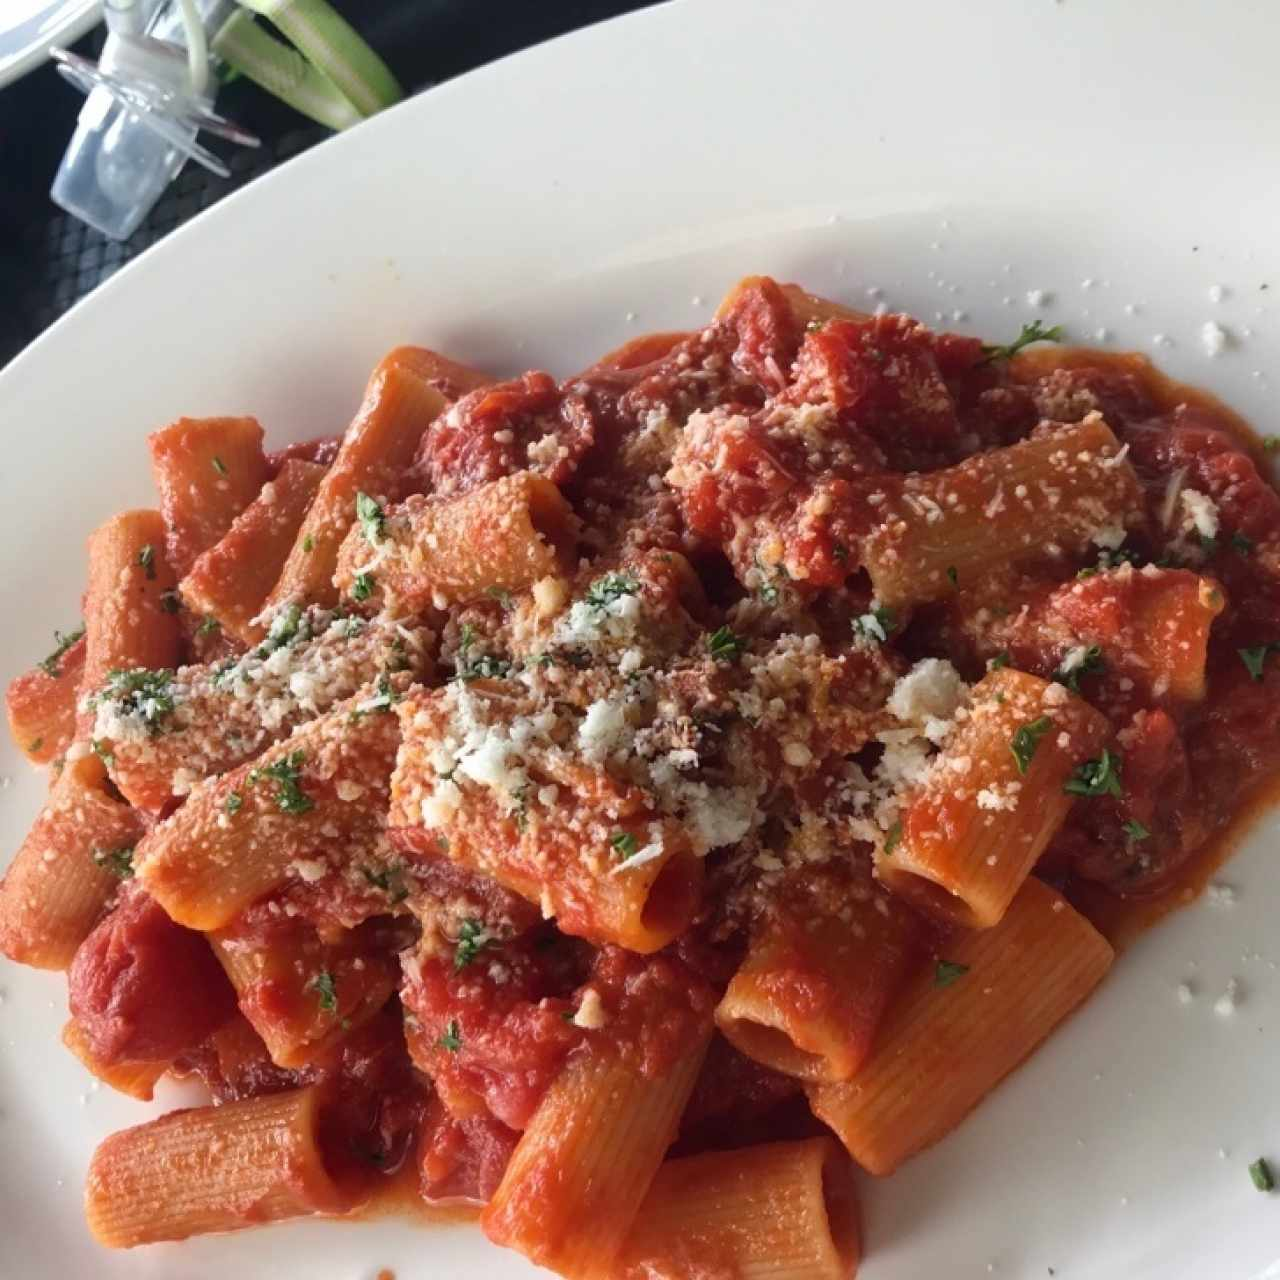 Rigatoni all' Amatriciana